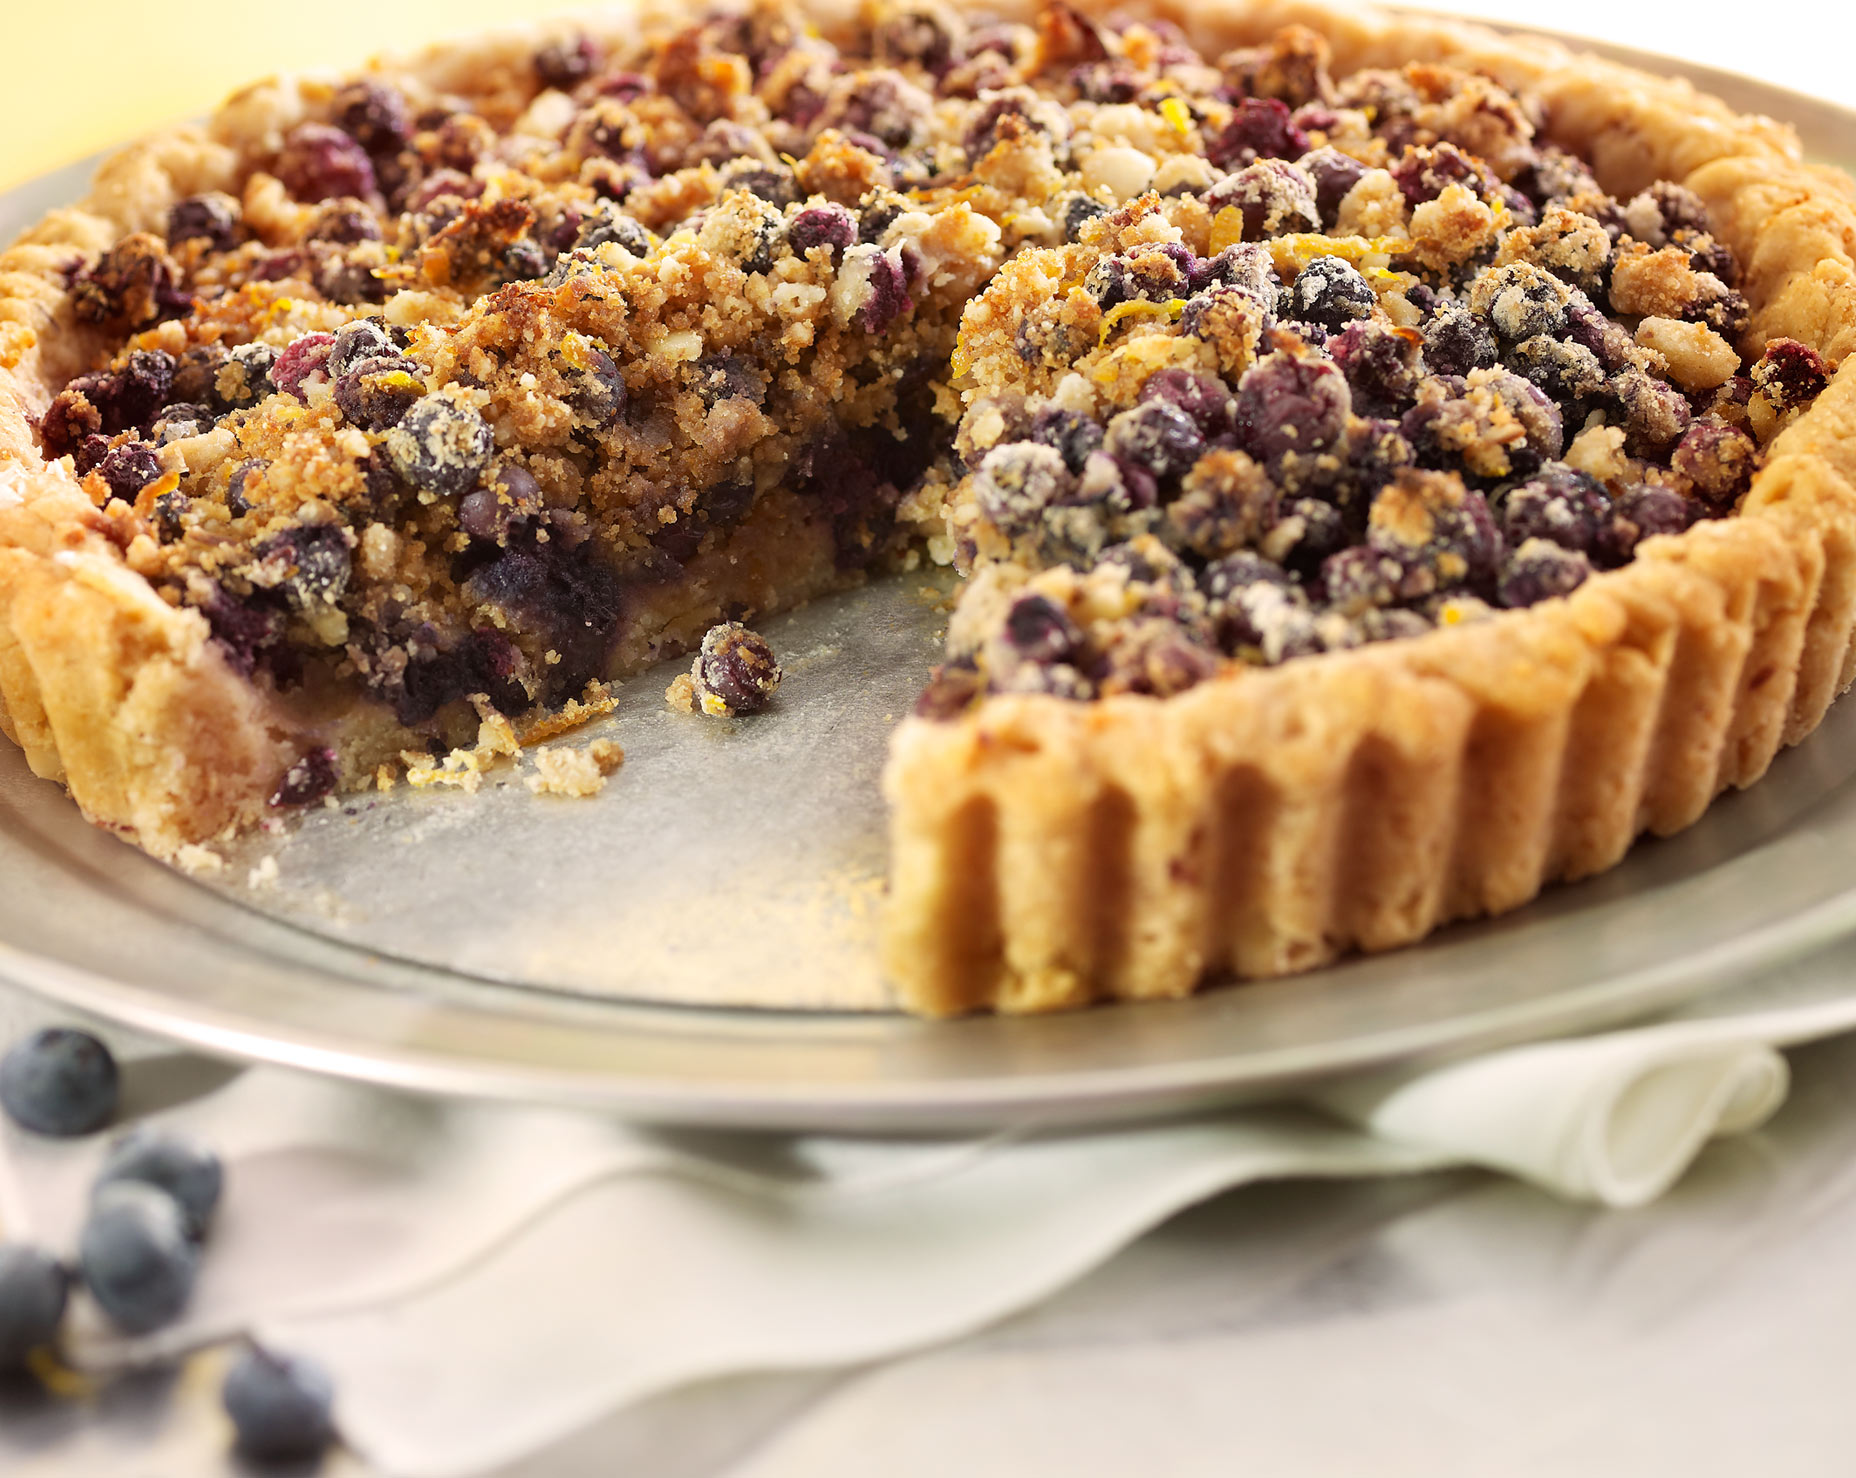 Glasshouse Assignment - David Bishop - Food Photography - Wild Maine Blueberry Linzer Tart